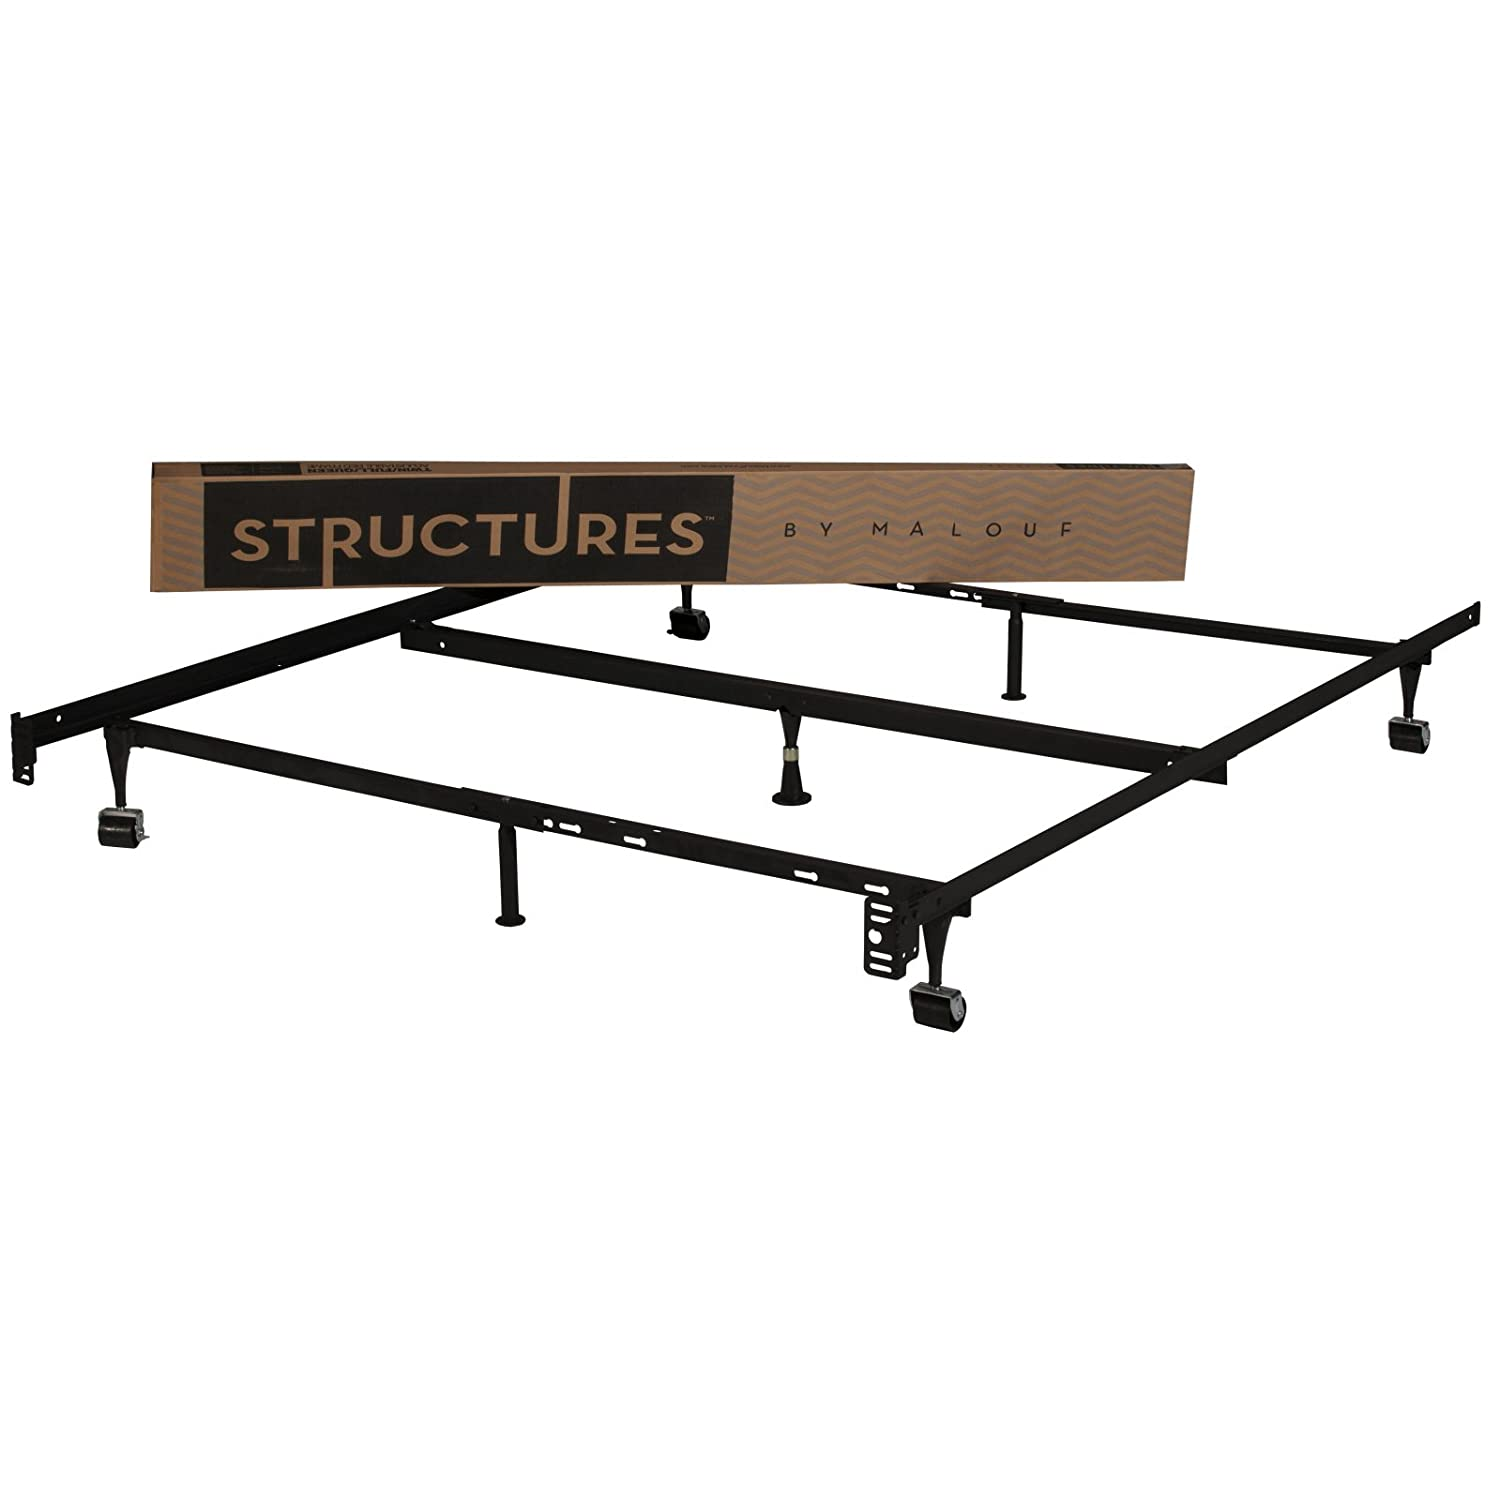 Sears Adjustable Twin Beds : Structure twin xl metal bed frame with rug rollers home